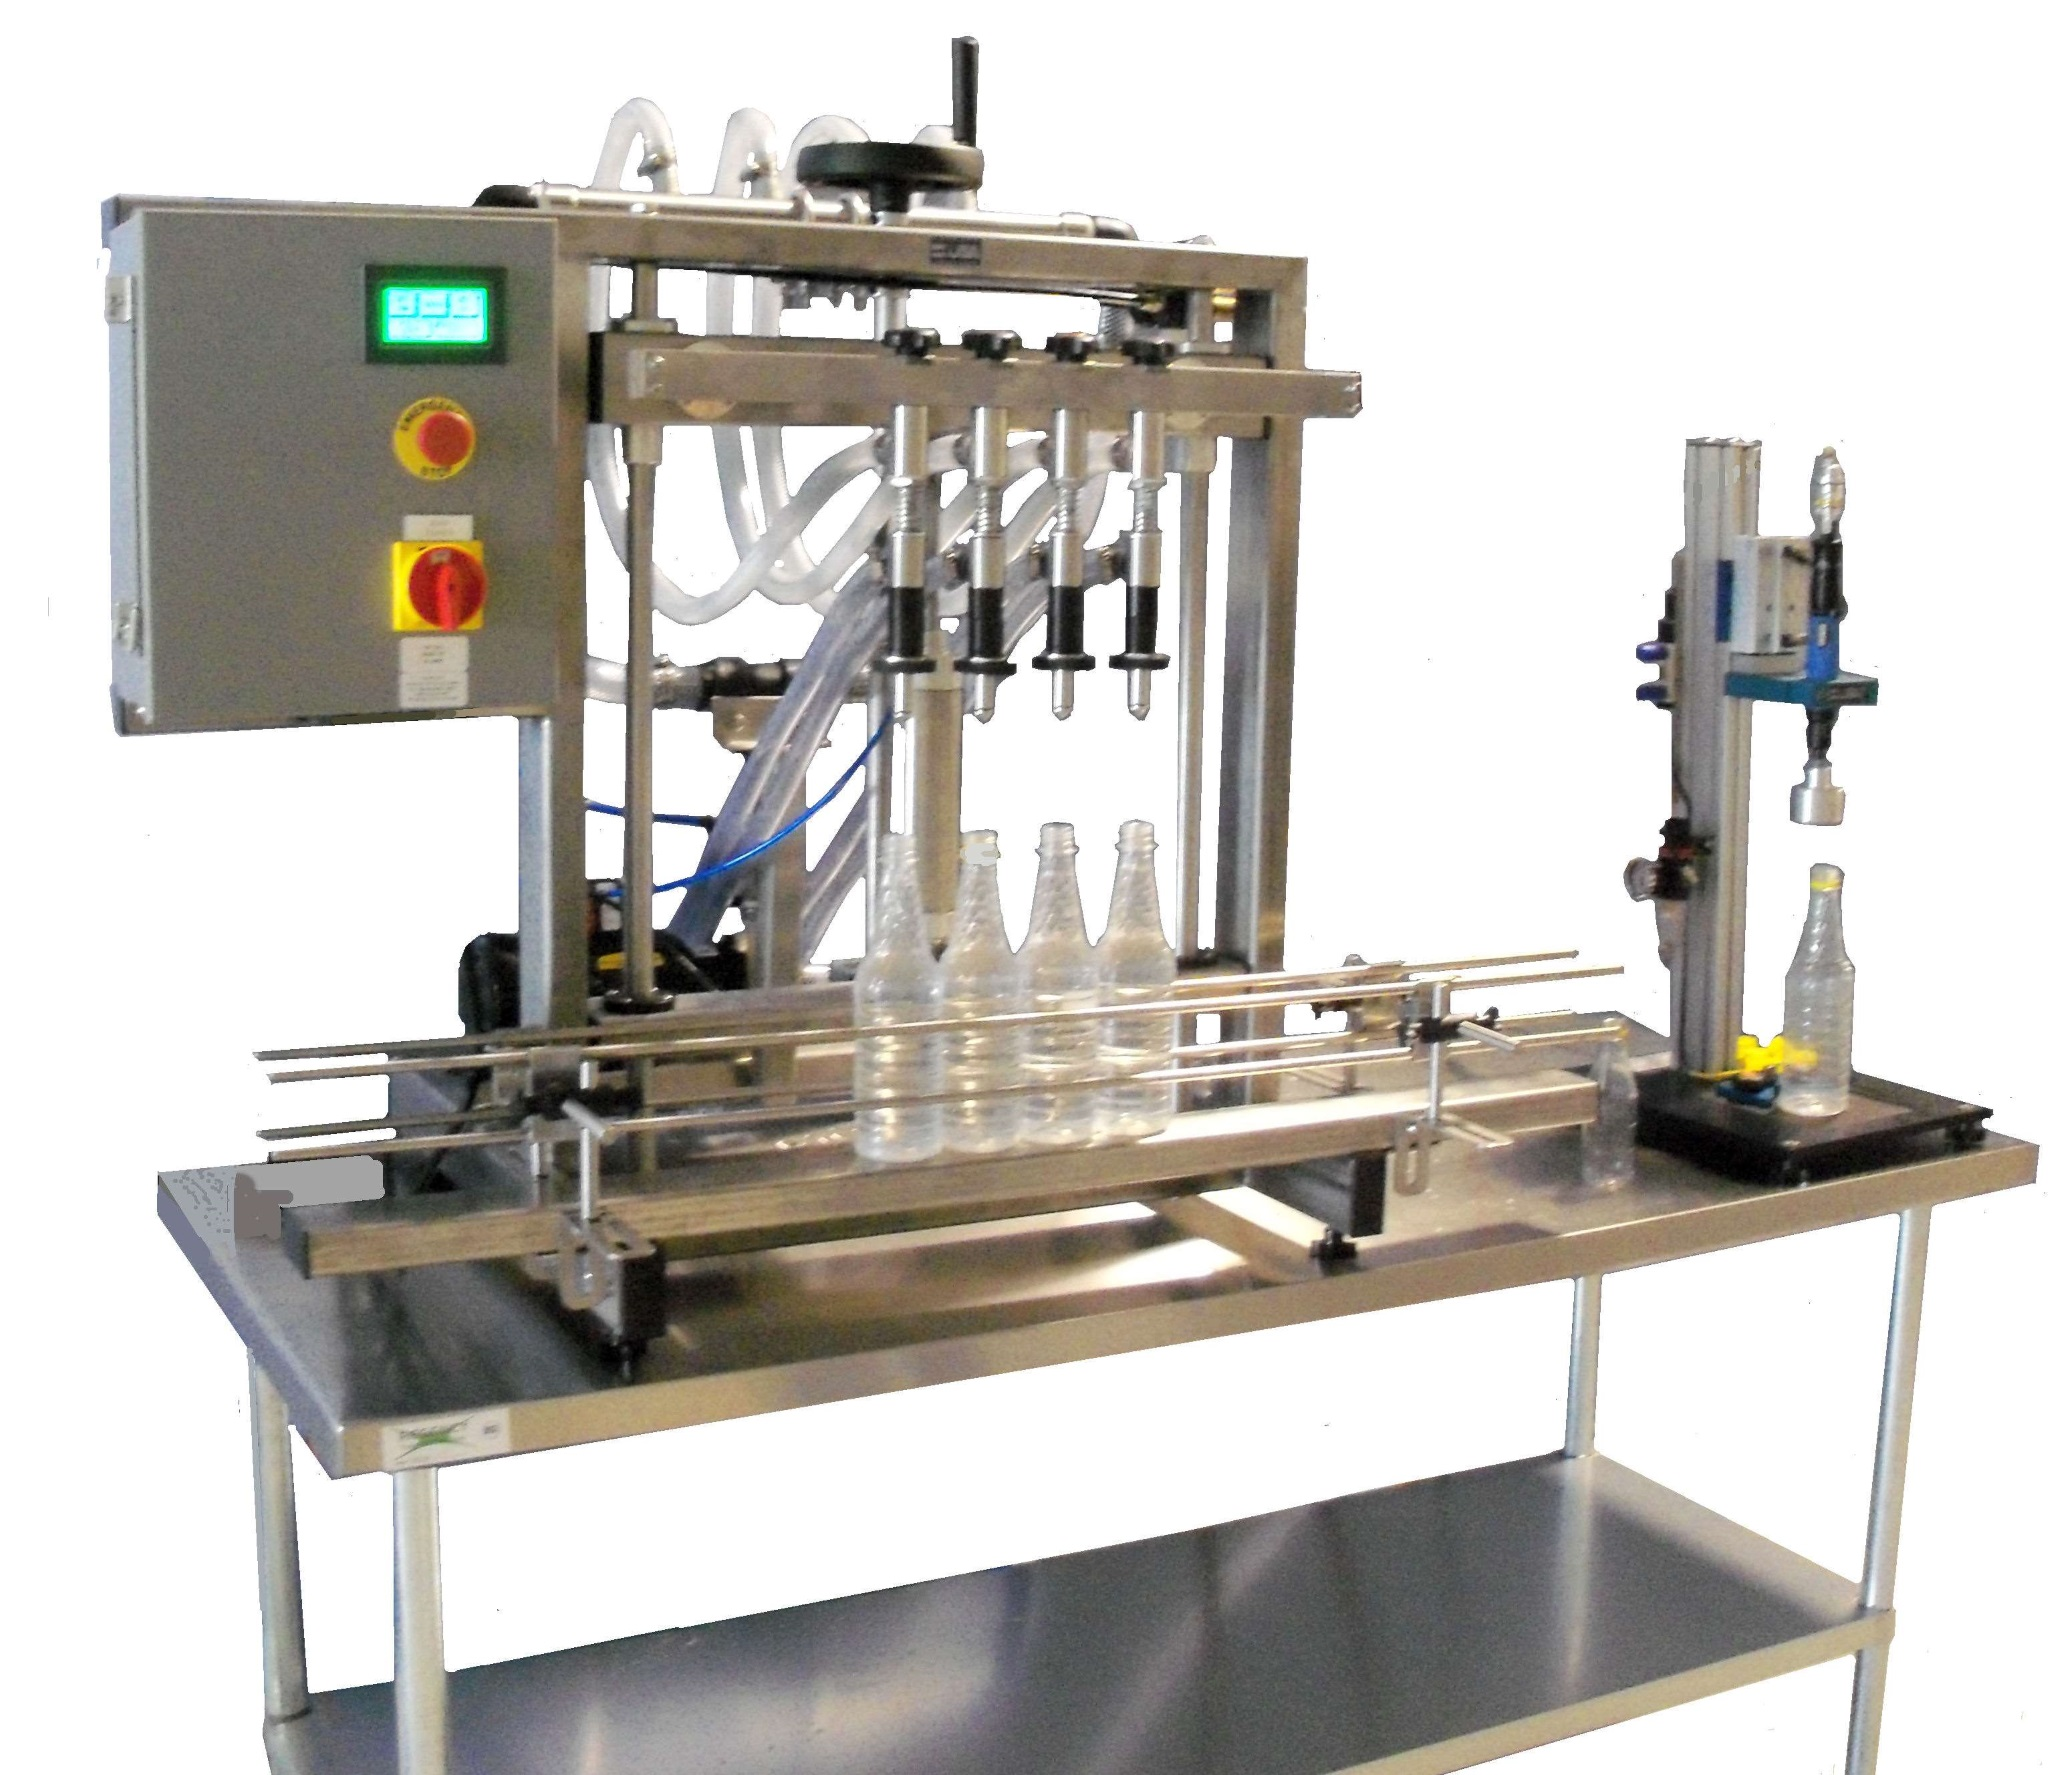 Tabletop Overflow Filling Machine with Chuck Capper from LPS